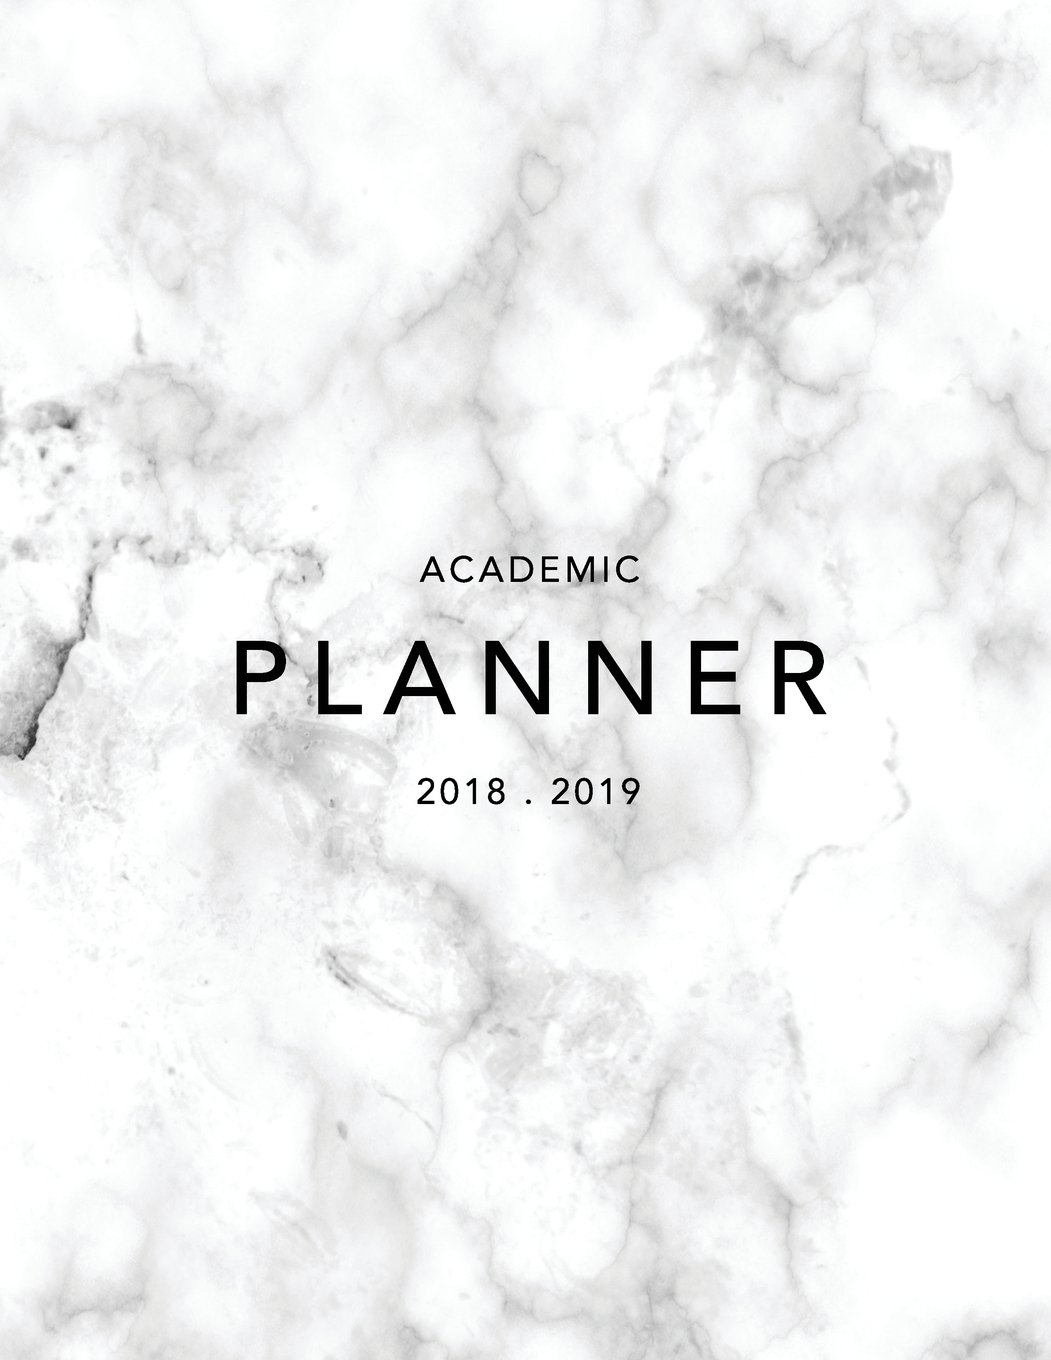 Academic Planner 2018-19: Marble + Gold Weekly View Student Planner | To Do Lists Goal-Setting Class Schedules + More (August 2018 - July 2019) (2018-2019 Student Planners Band 7)